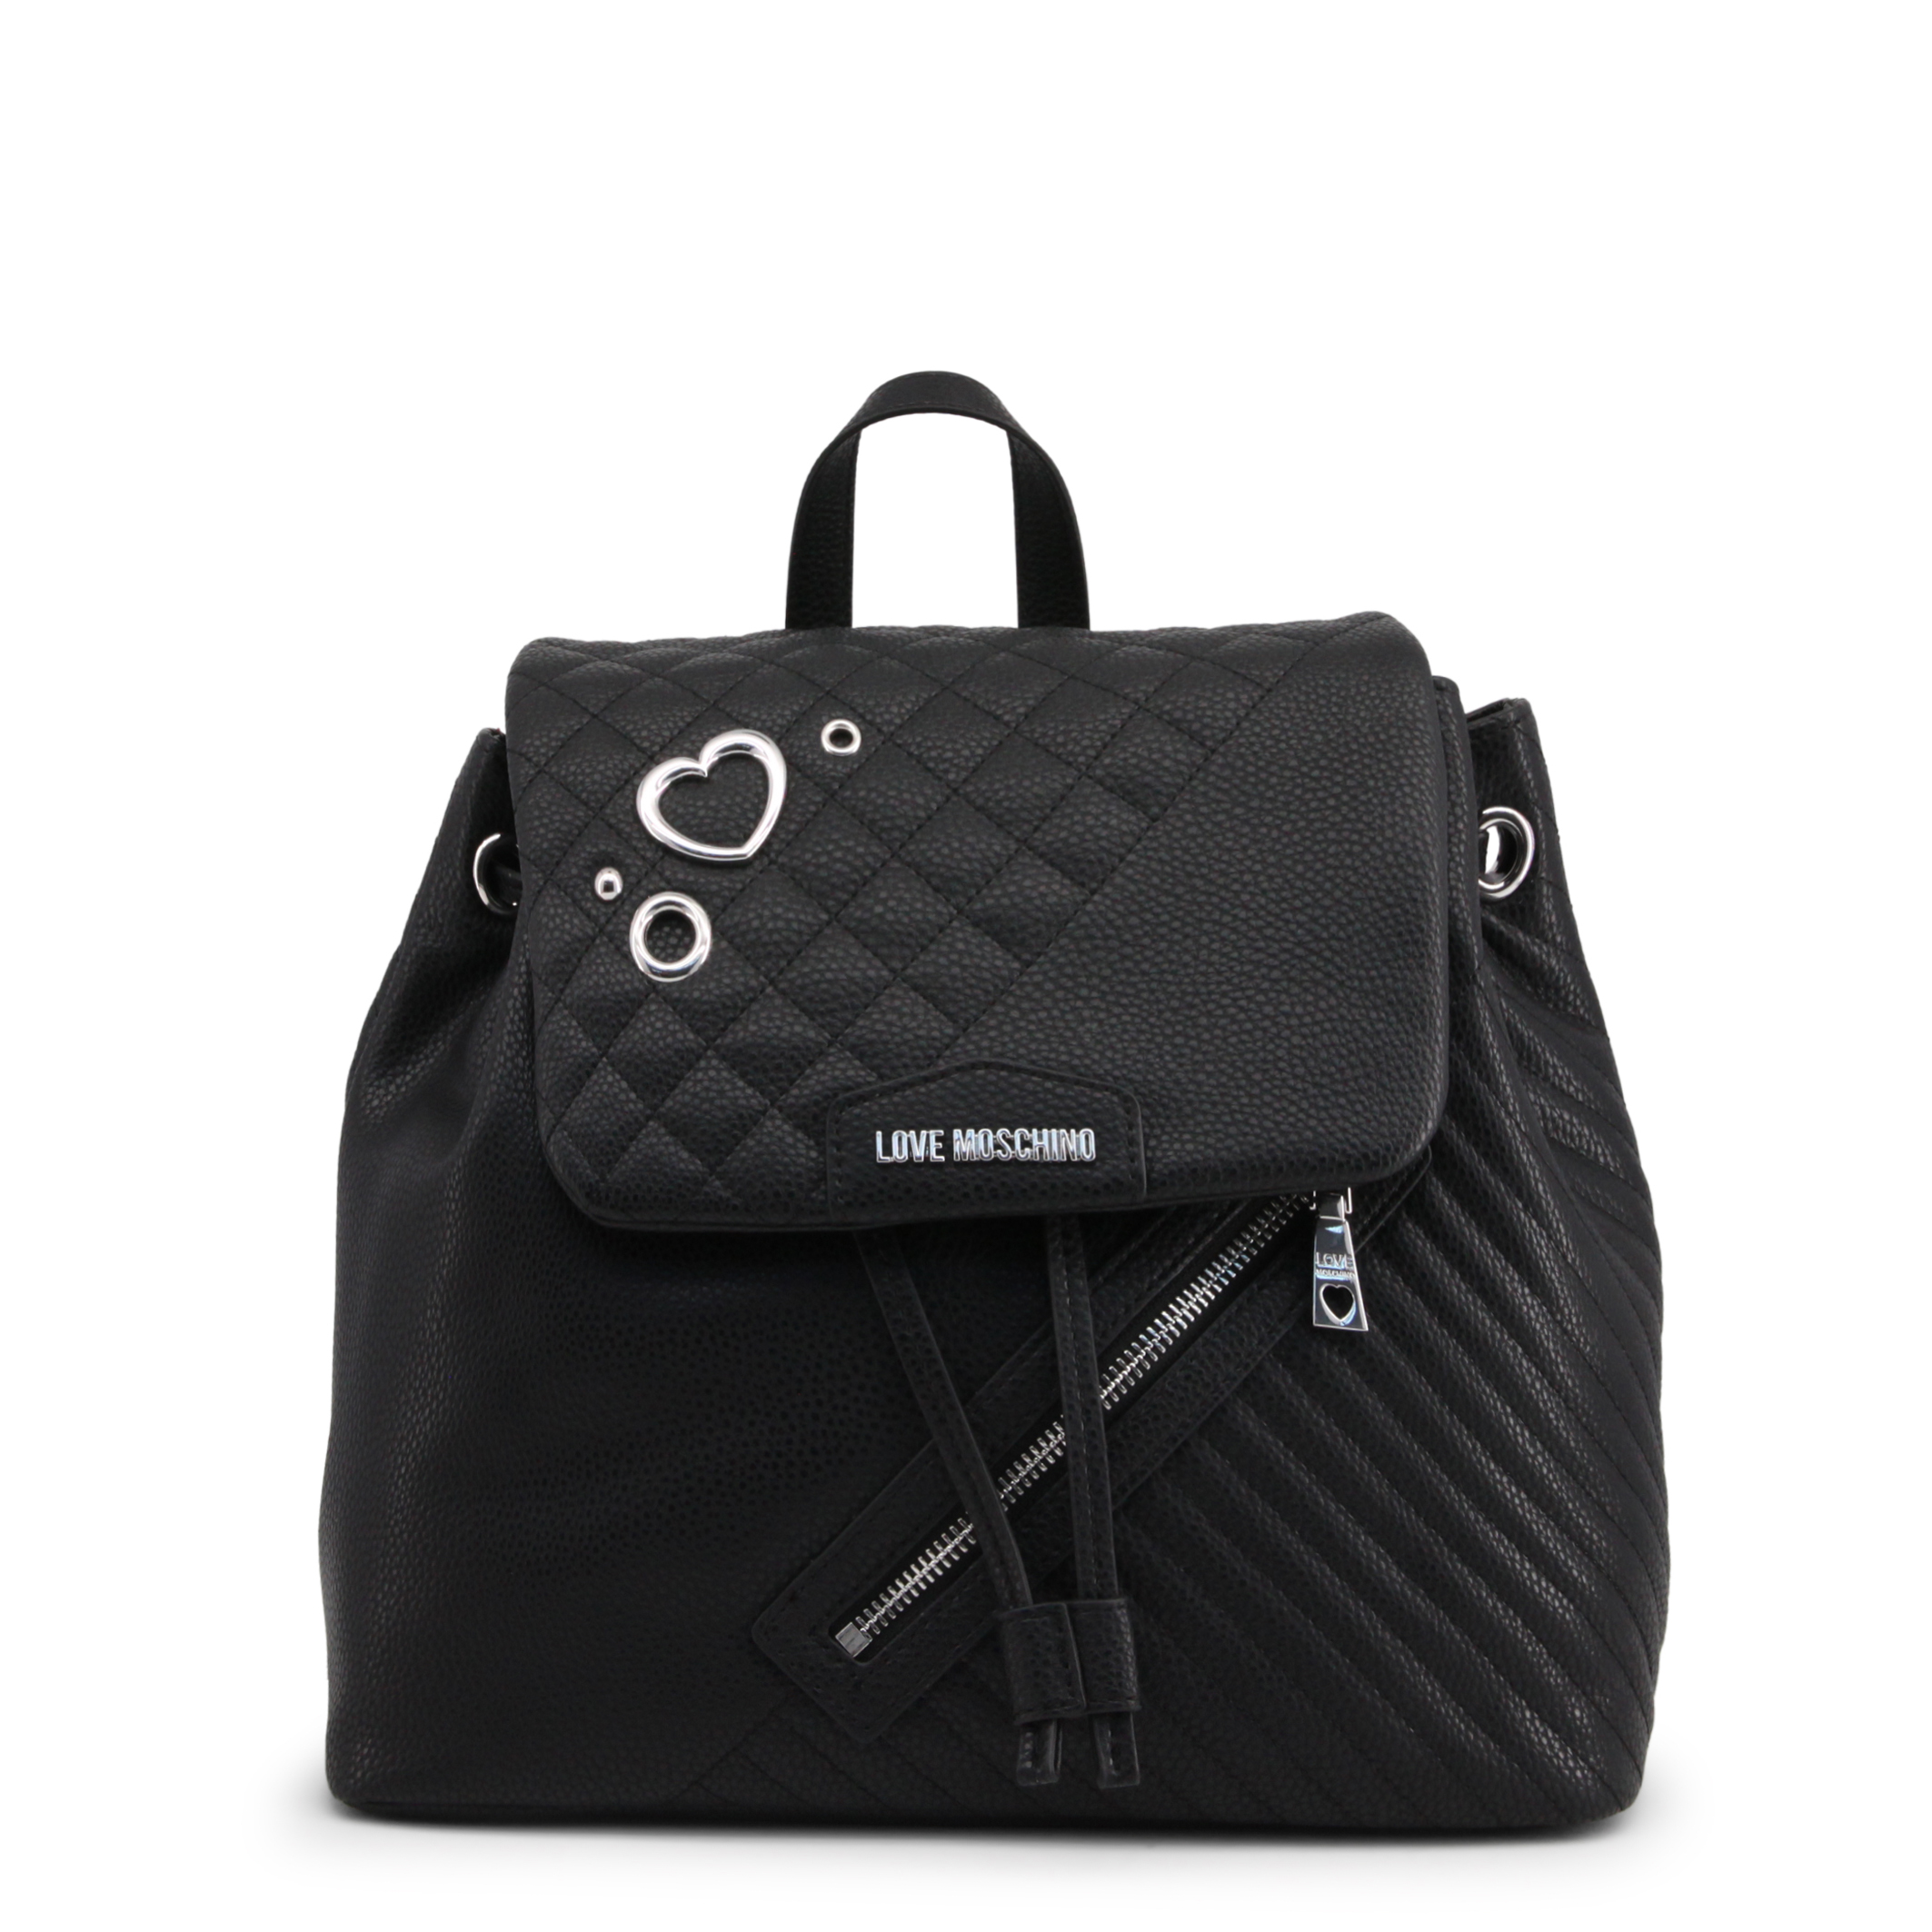 Sacs à dos  Love moschino JC4076PP16LL black